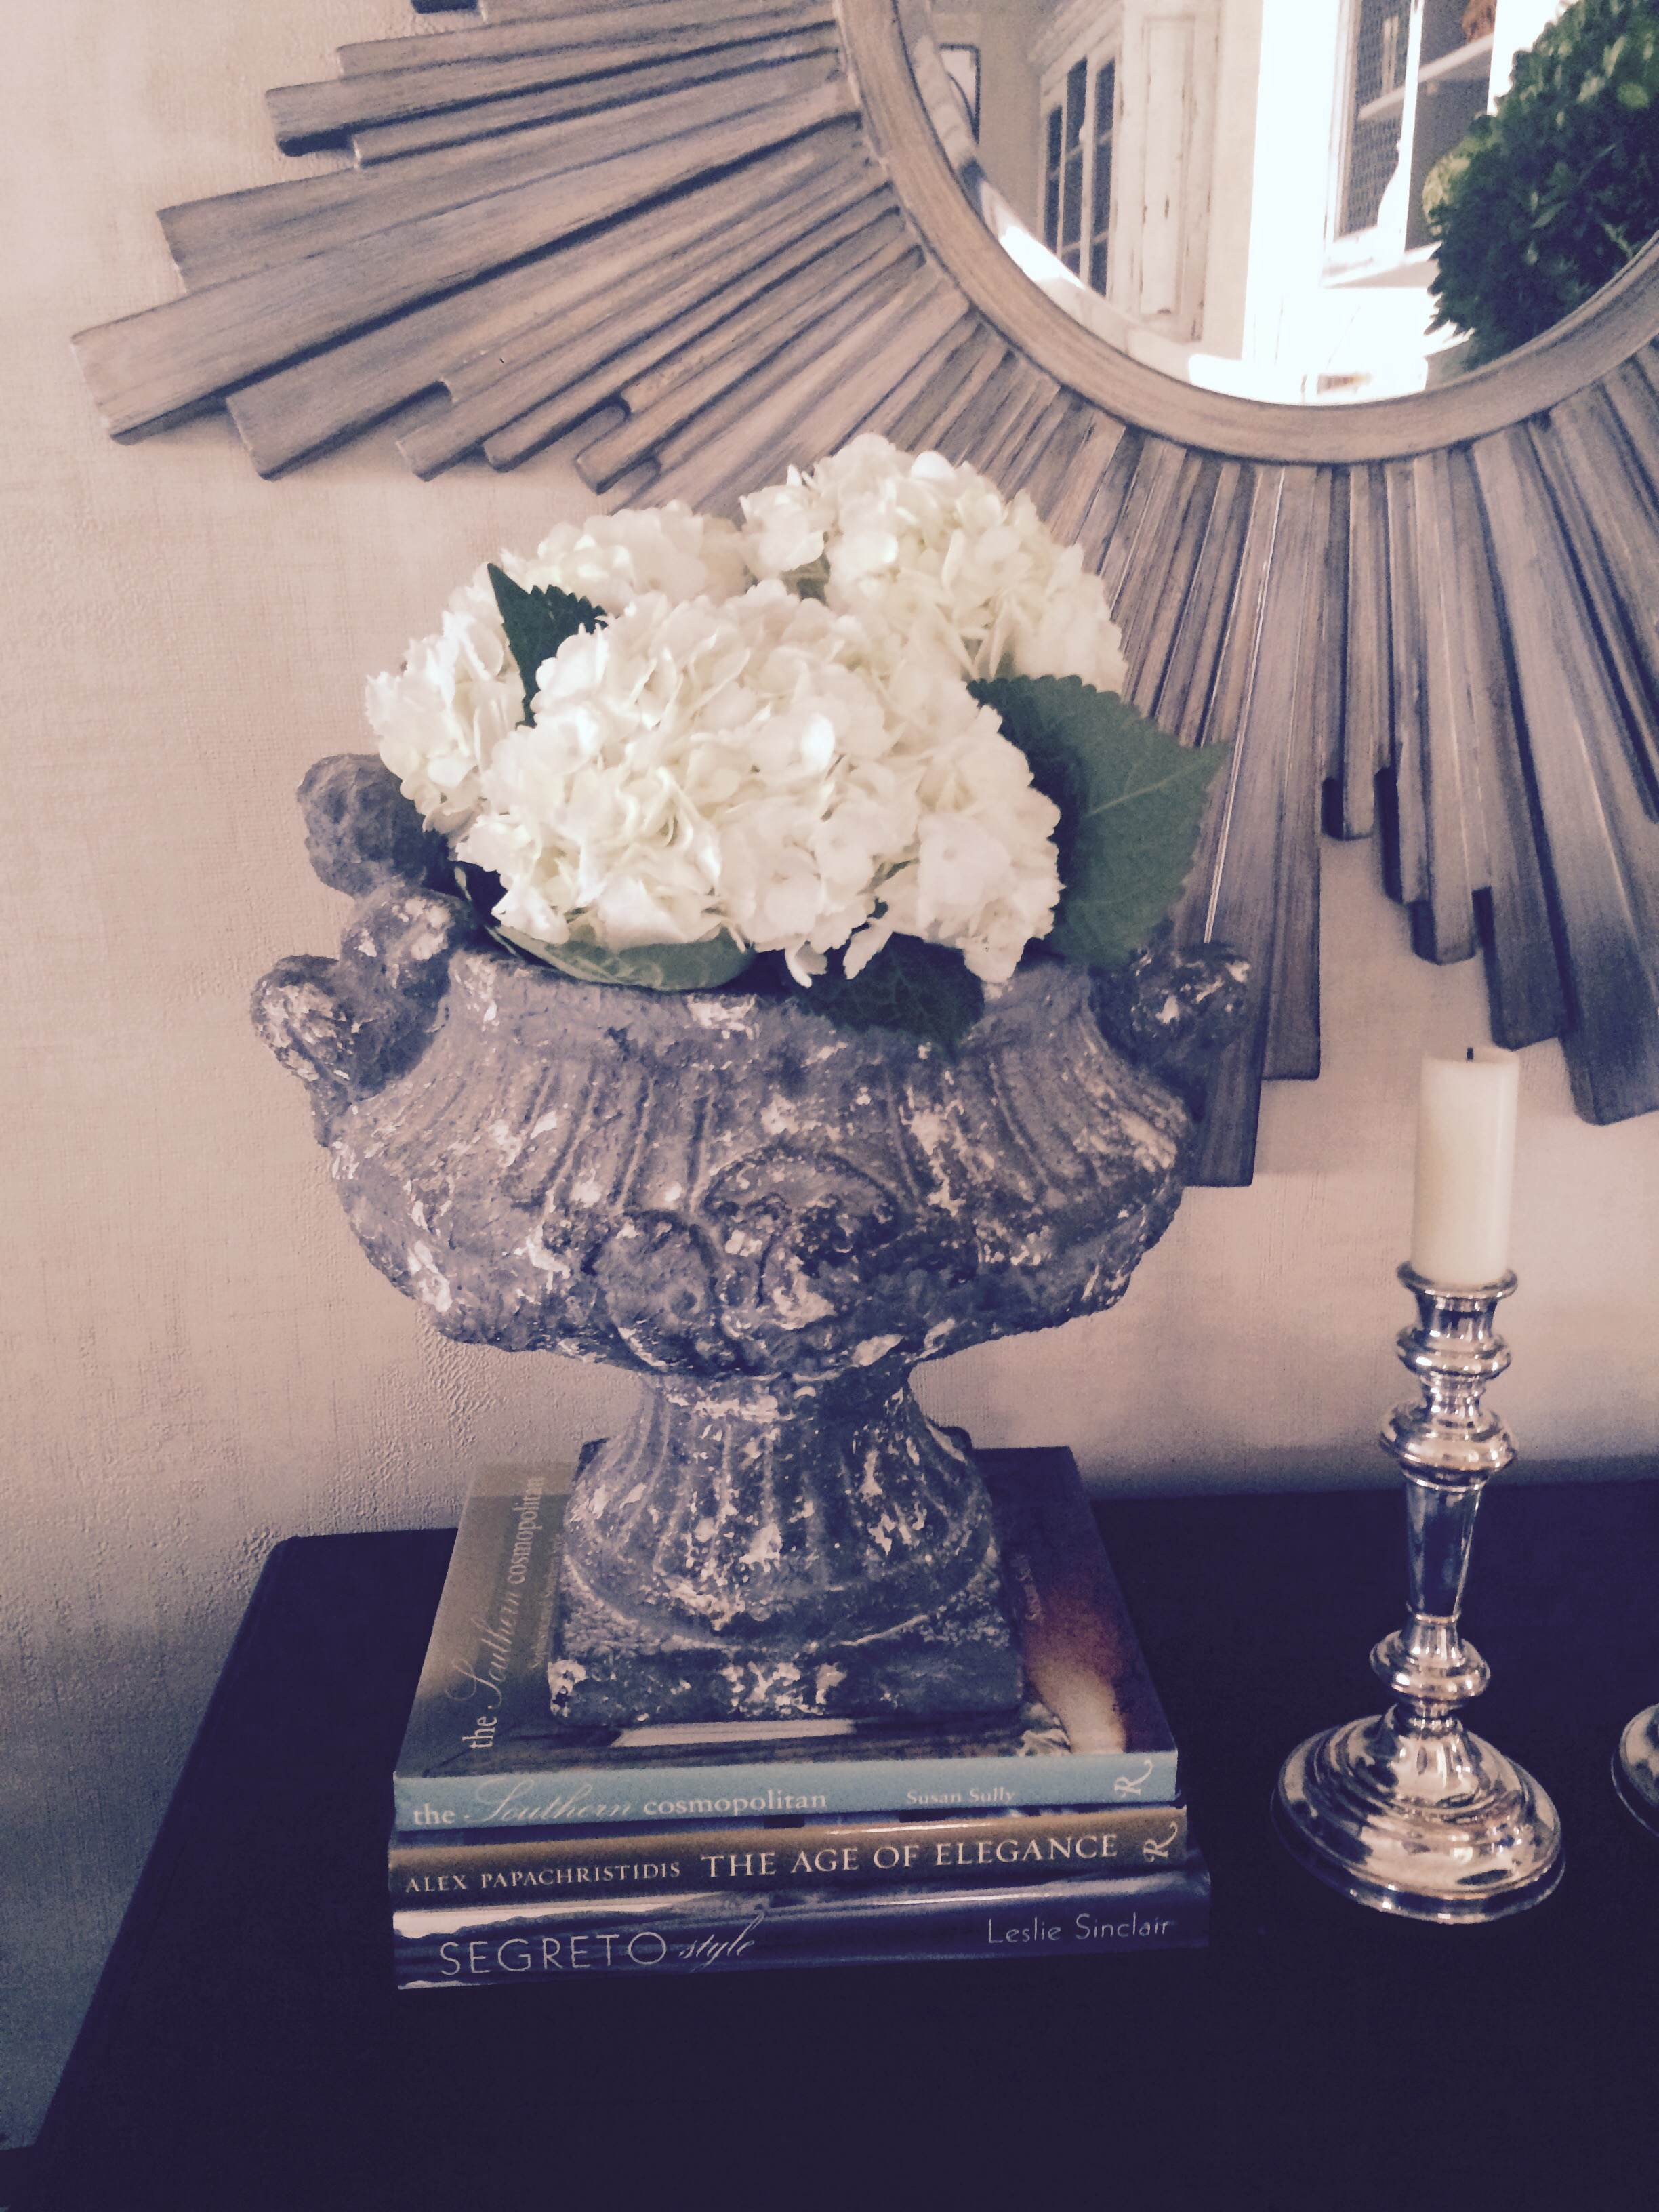 Fresh hydrangeas look great in an urn in our designer Cathy's living room.  She placed the hydrangeas in a mason jar and tucked the mason jar inside the urn, viola!